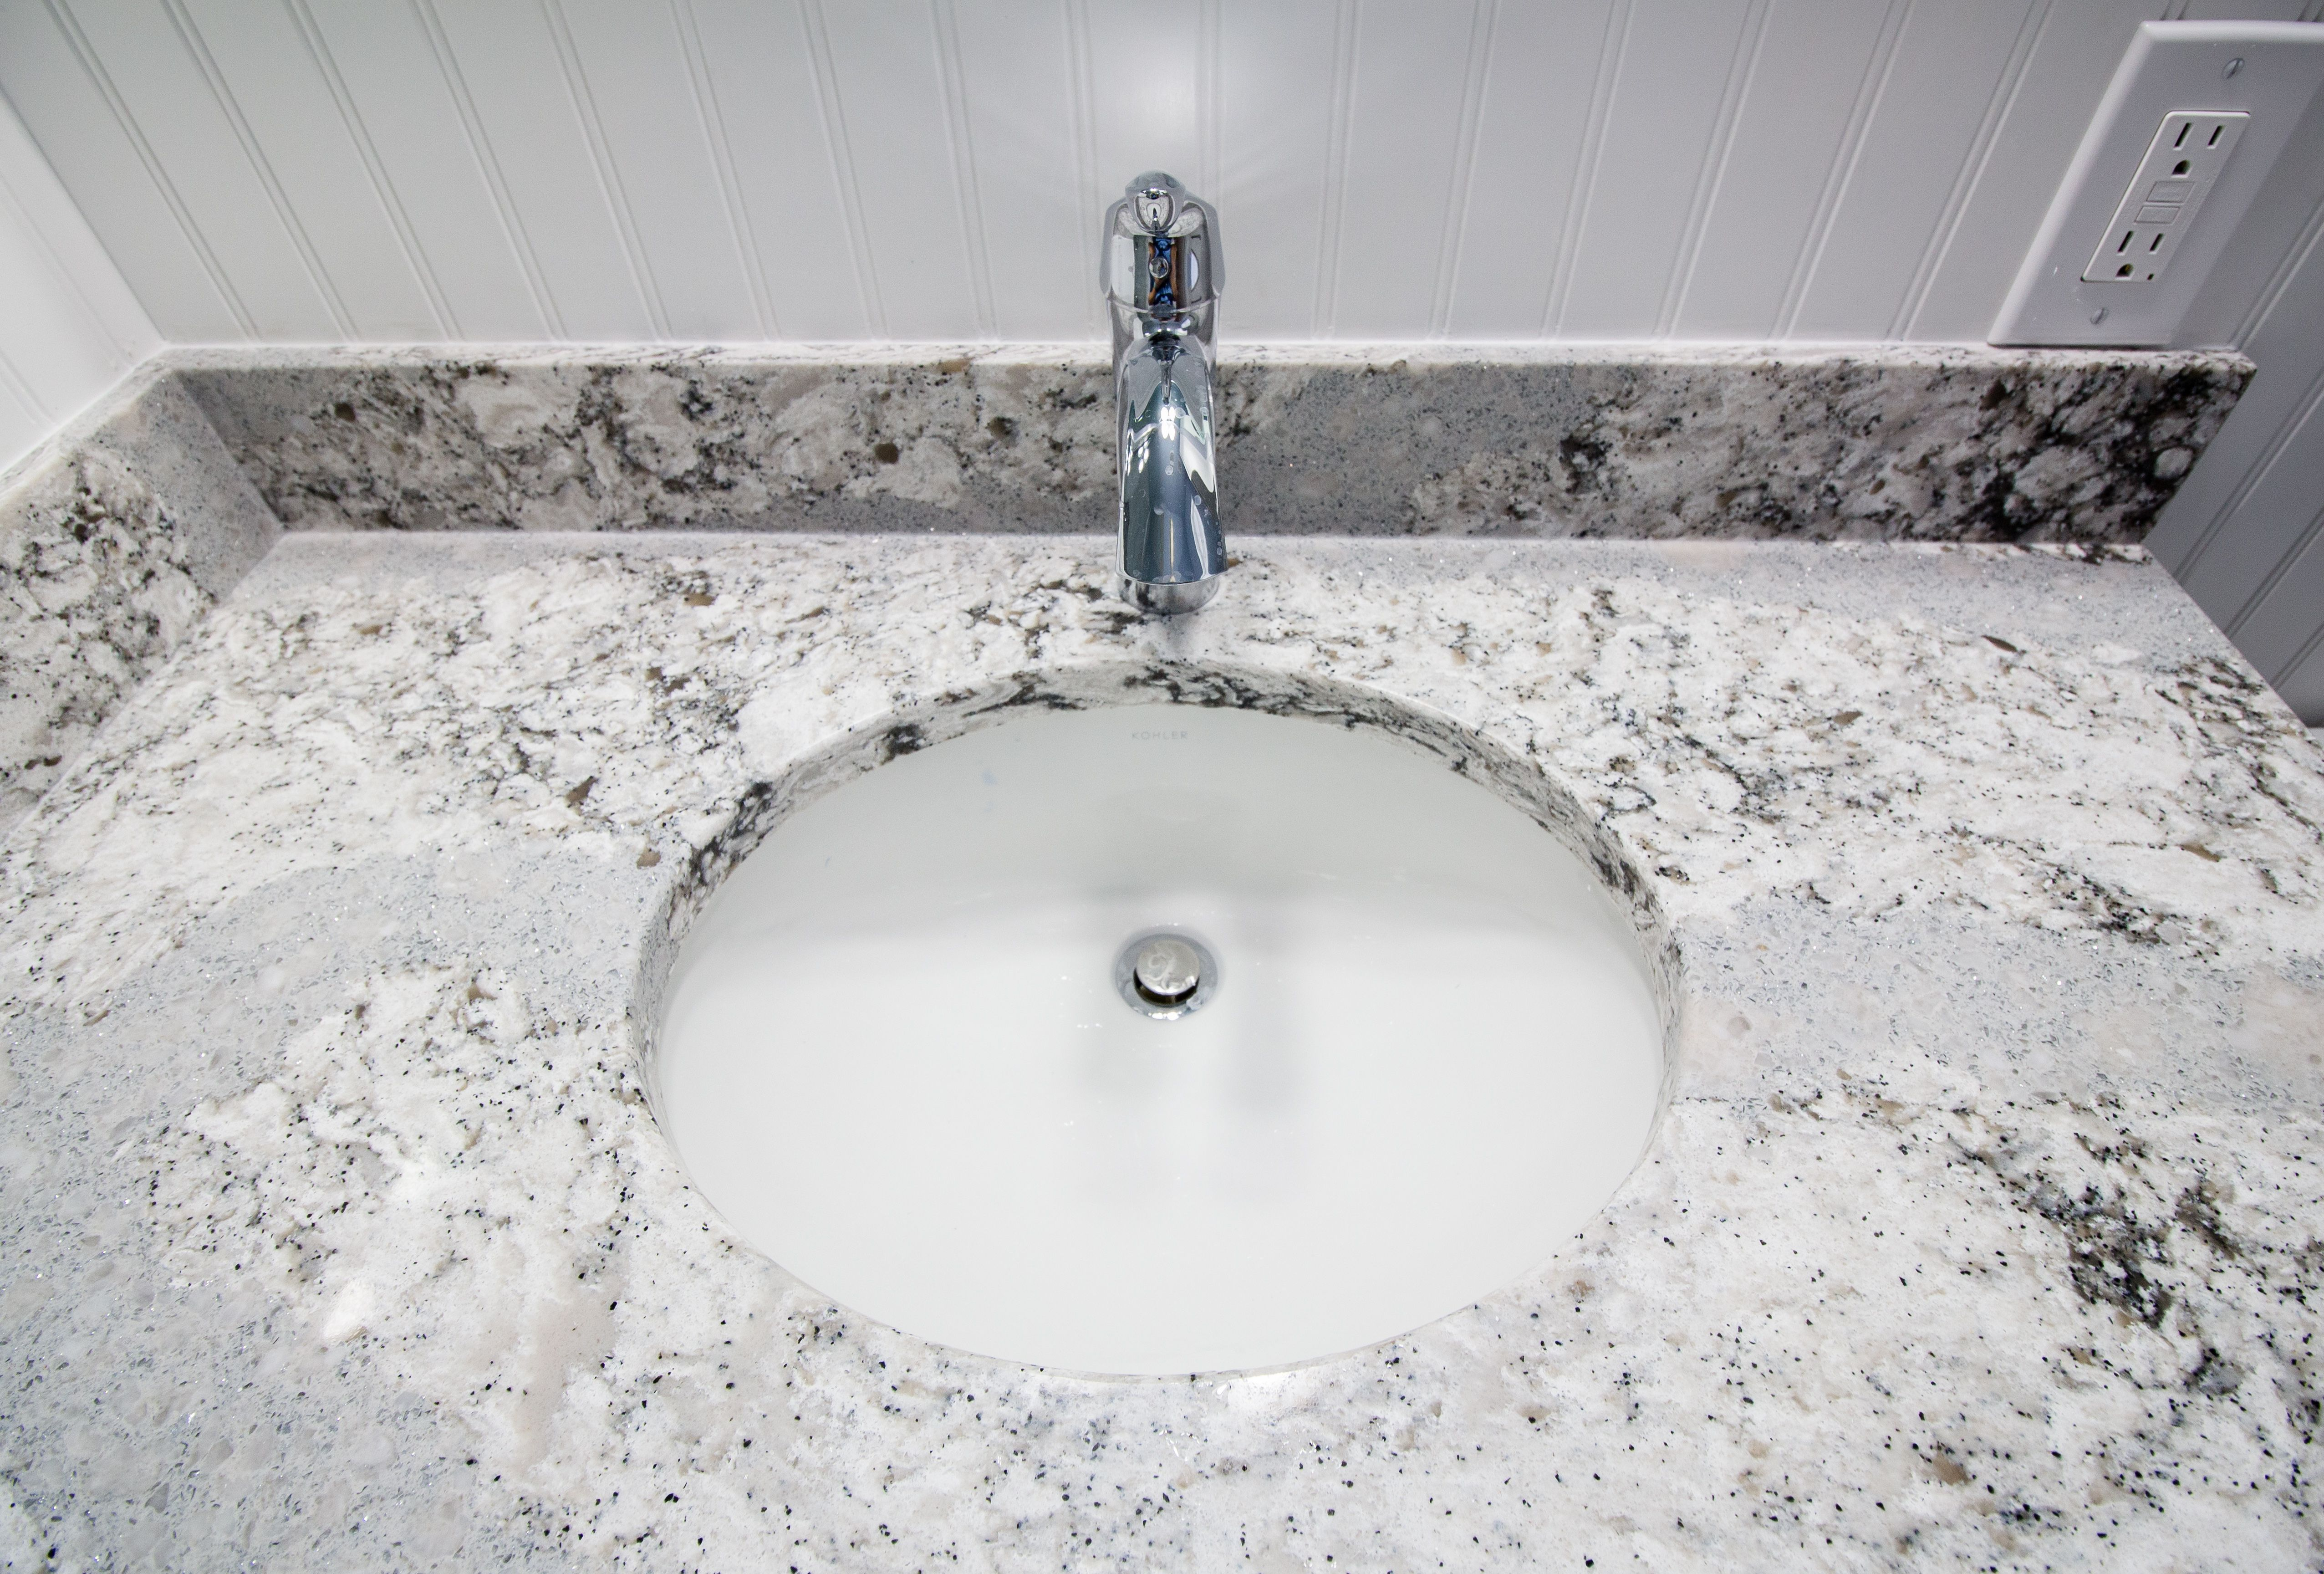 Cambria S Coastal Collection Summerhill Quartz Countertop With